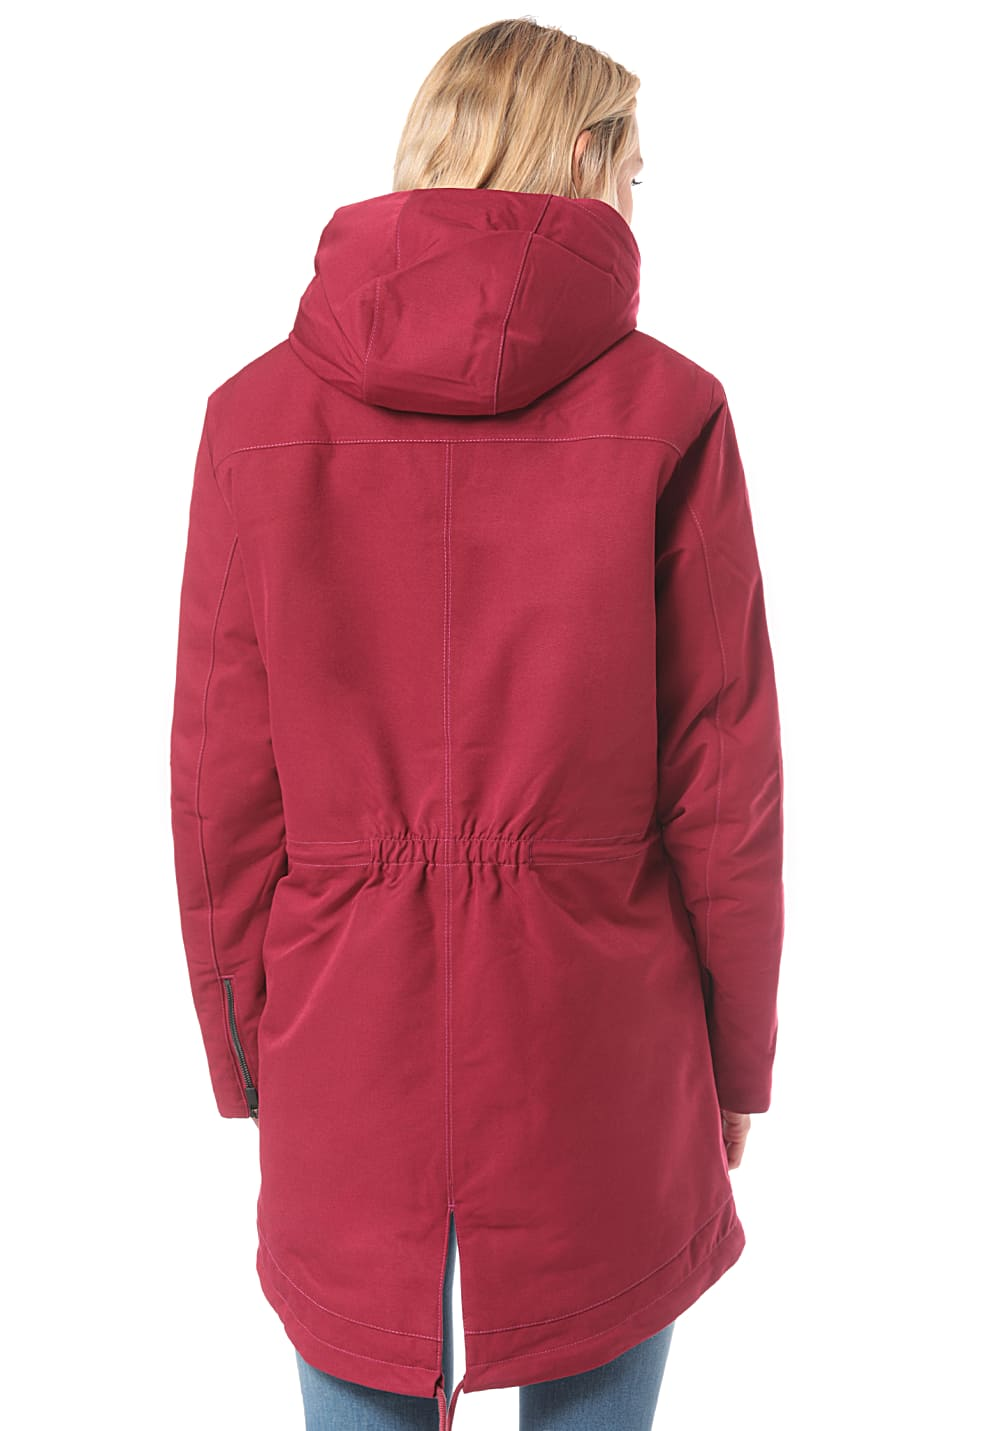 check out 549c6 18ff8 Vaude Manukau - Outdoor Jacket for Women - Red